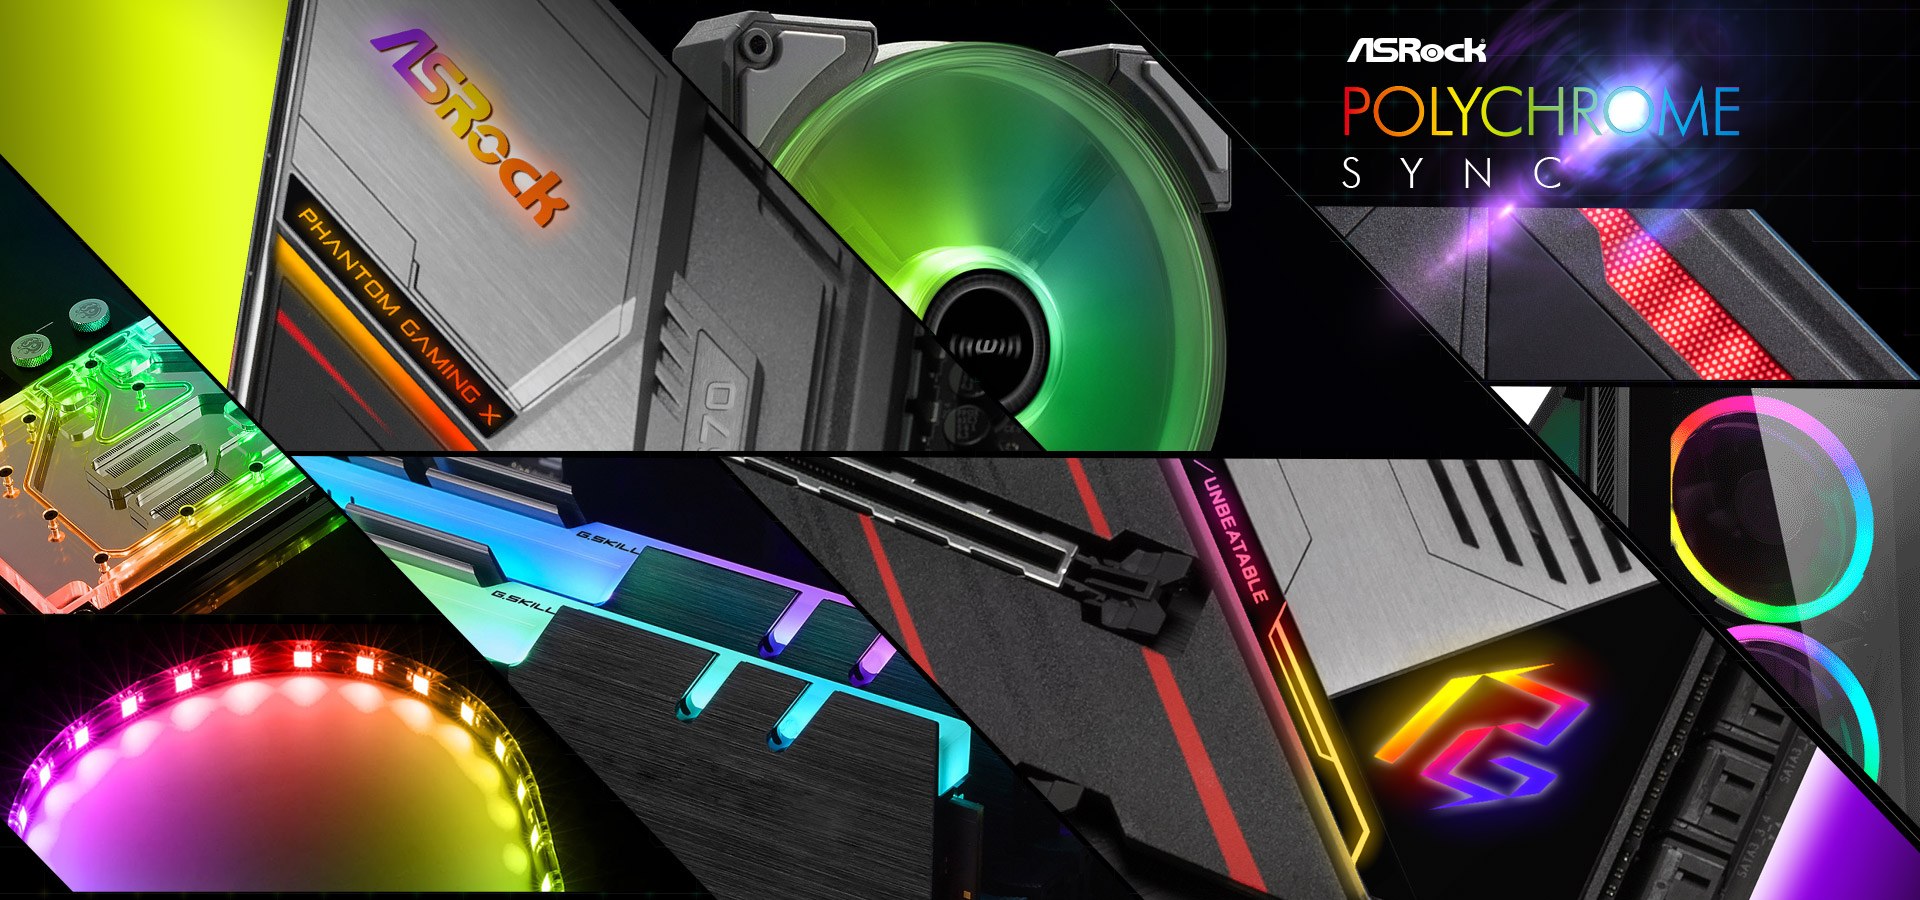 Different Closeup Shots of RGB-Lit Components and the RGB-Lit Areas on the ASRock X570 Phantom Gaming X Motherboard